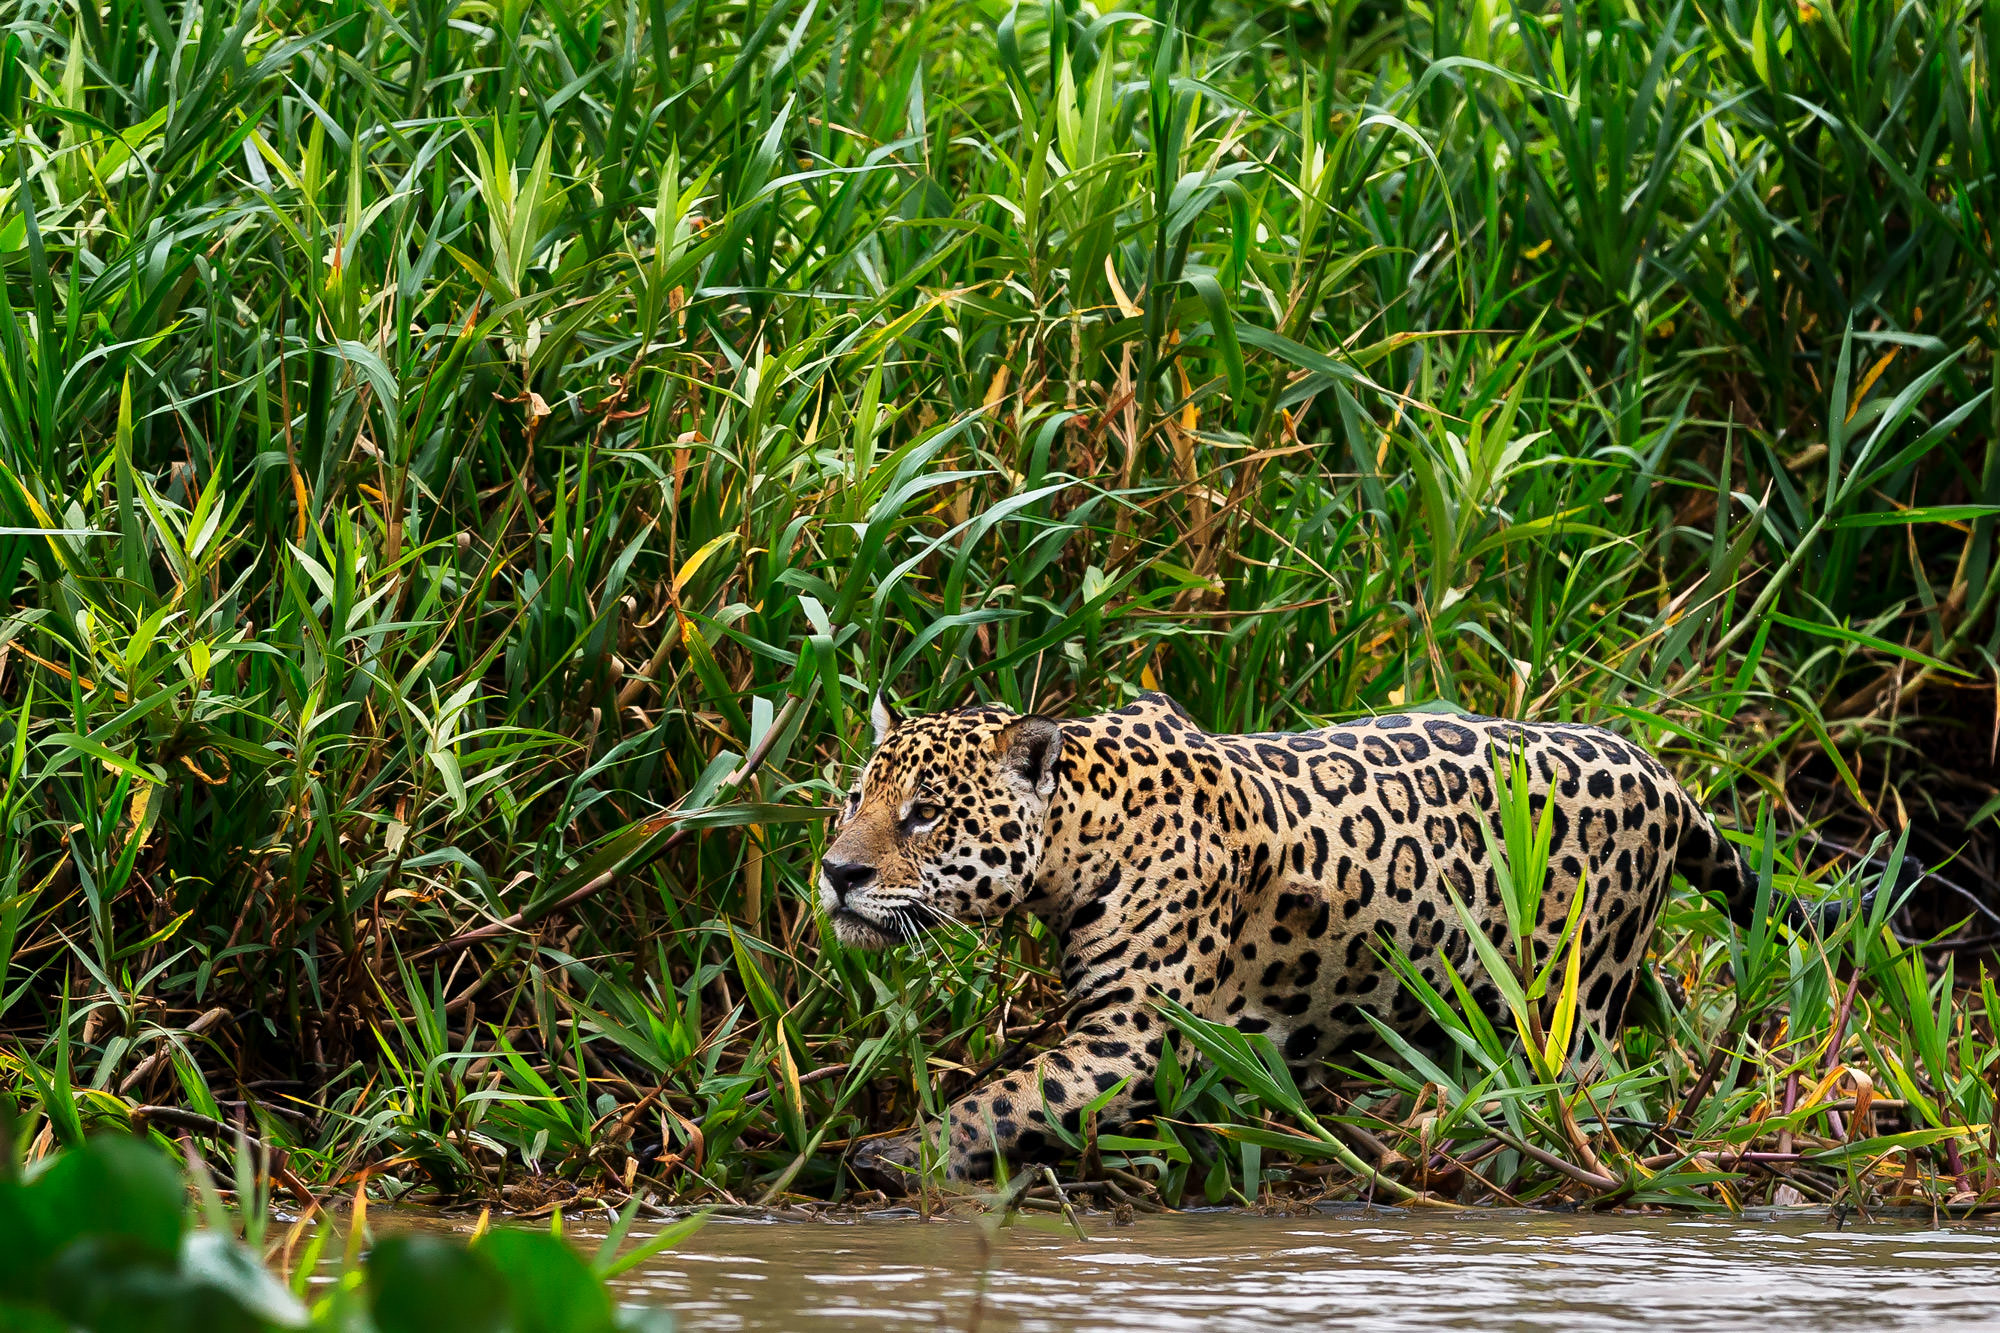 Jaguar Fine Art Photography A Limited Edition photograph of Jaguar appearing to make a stealth move at The Pantanal in Brazil...